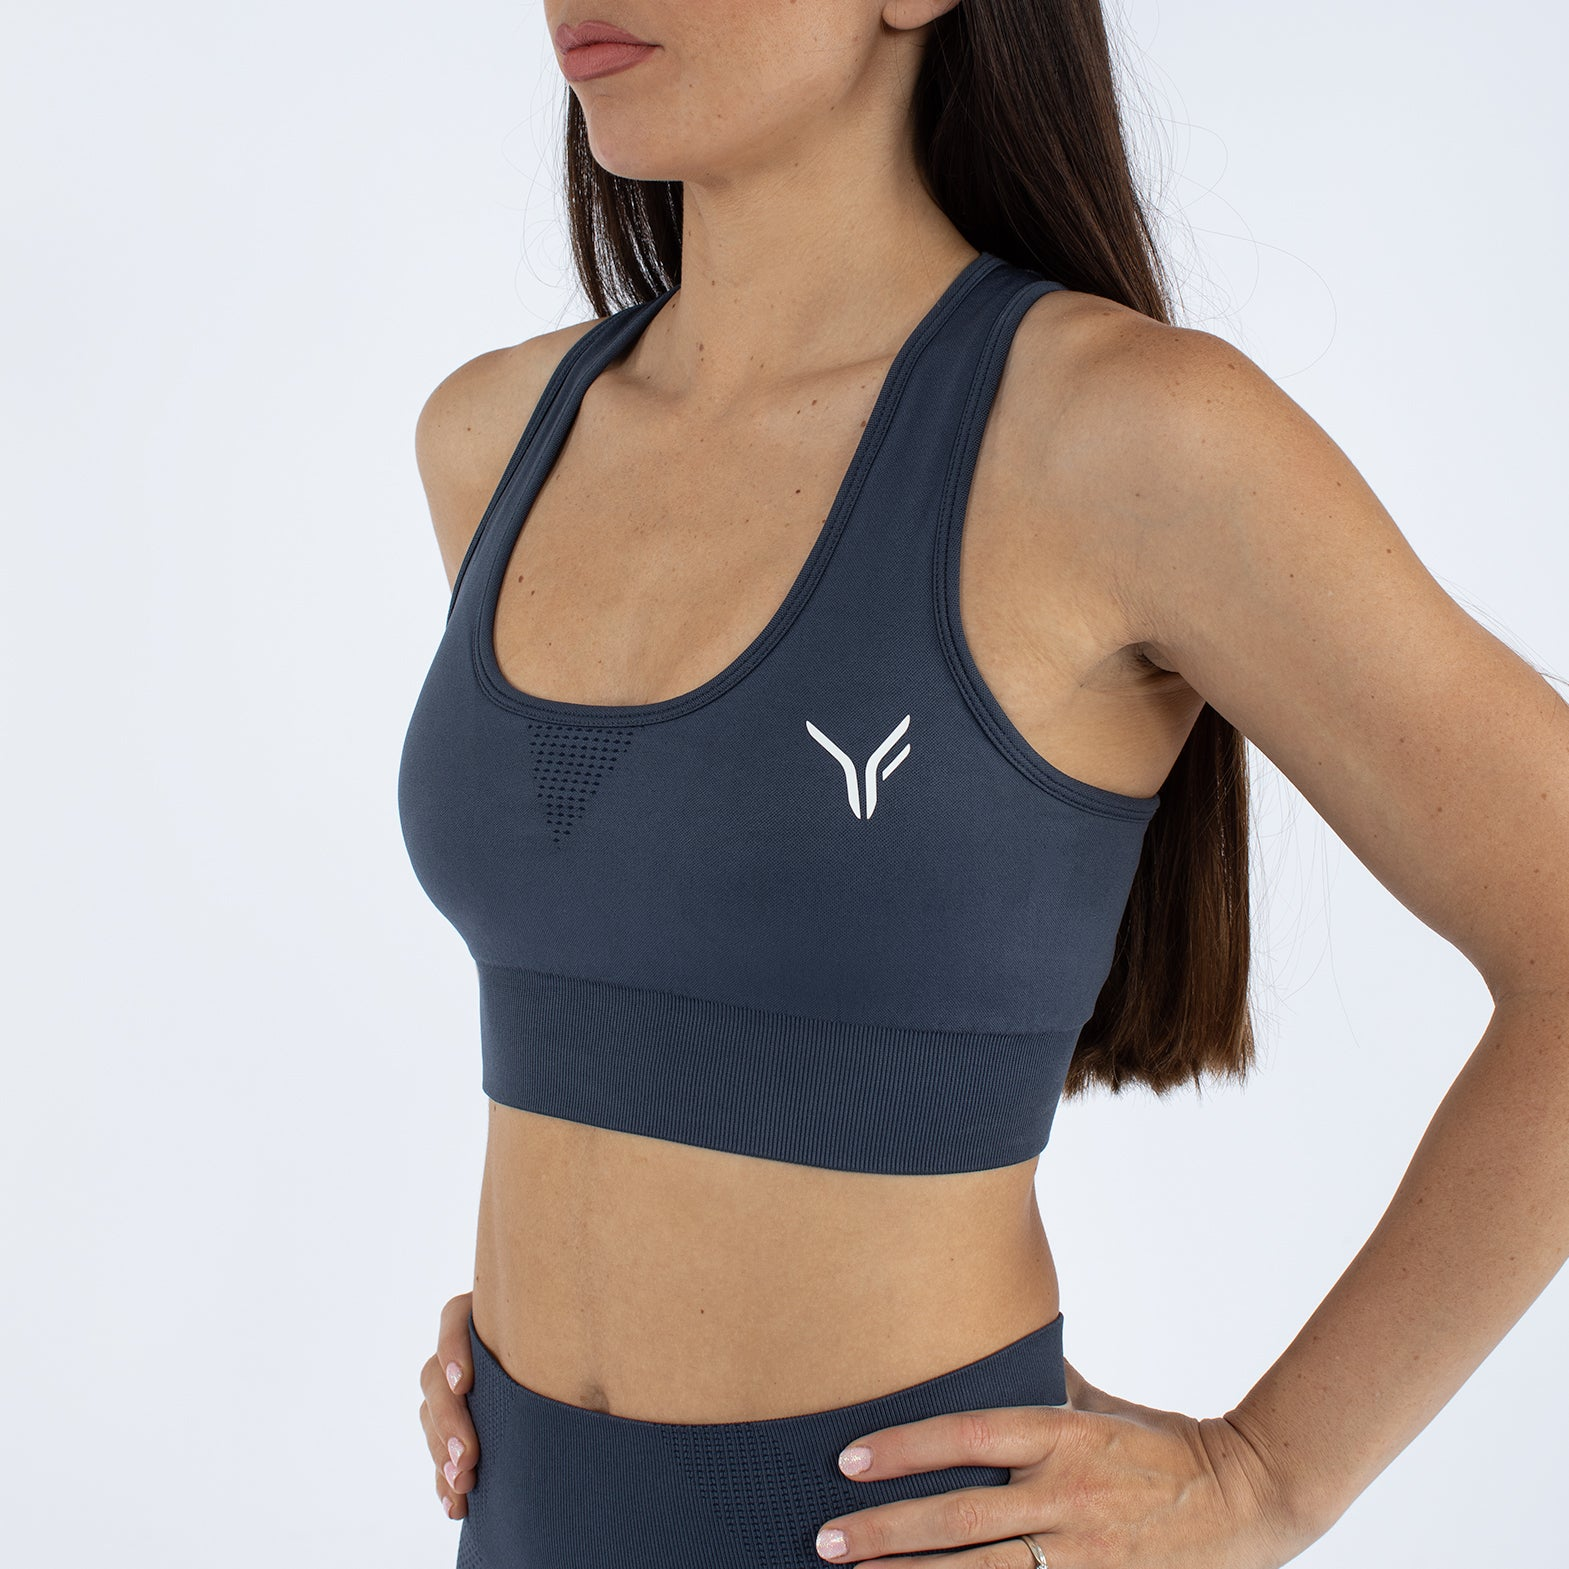 Alskar Seamless Sports Bra - Dark Grey